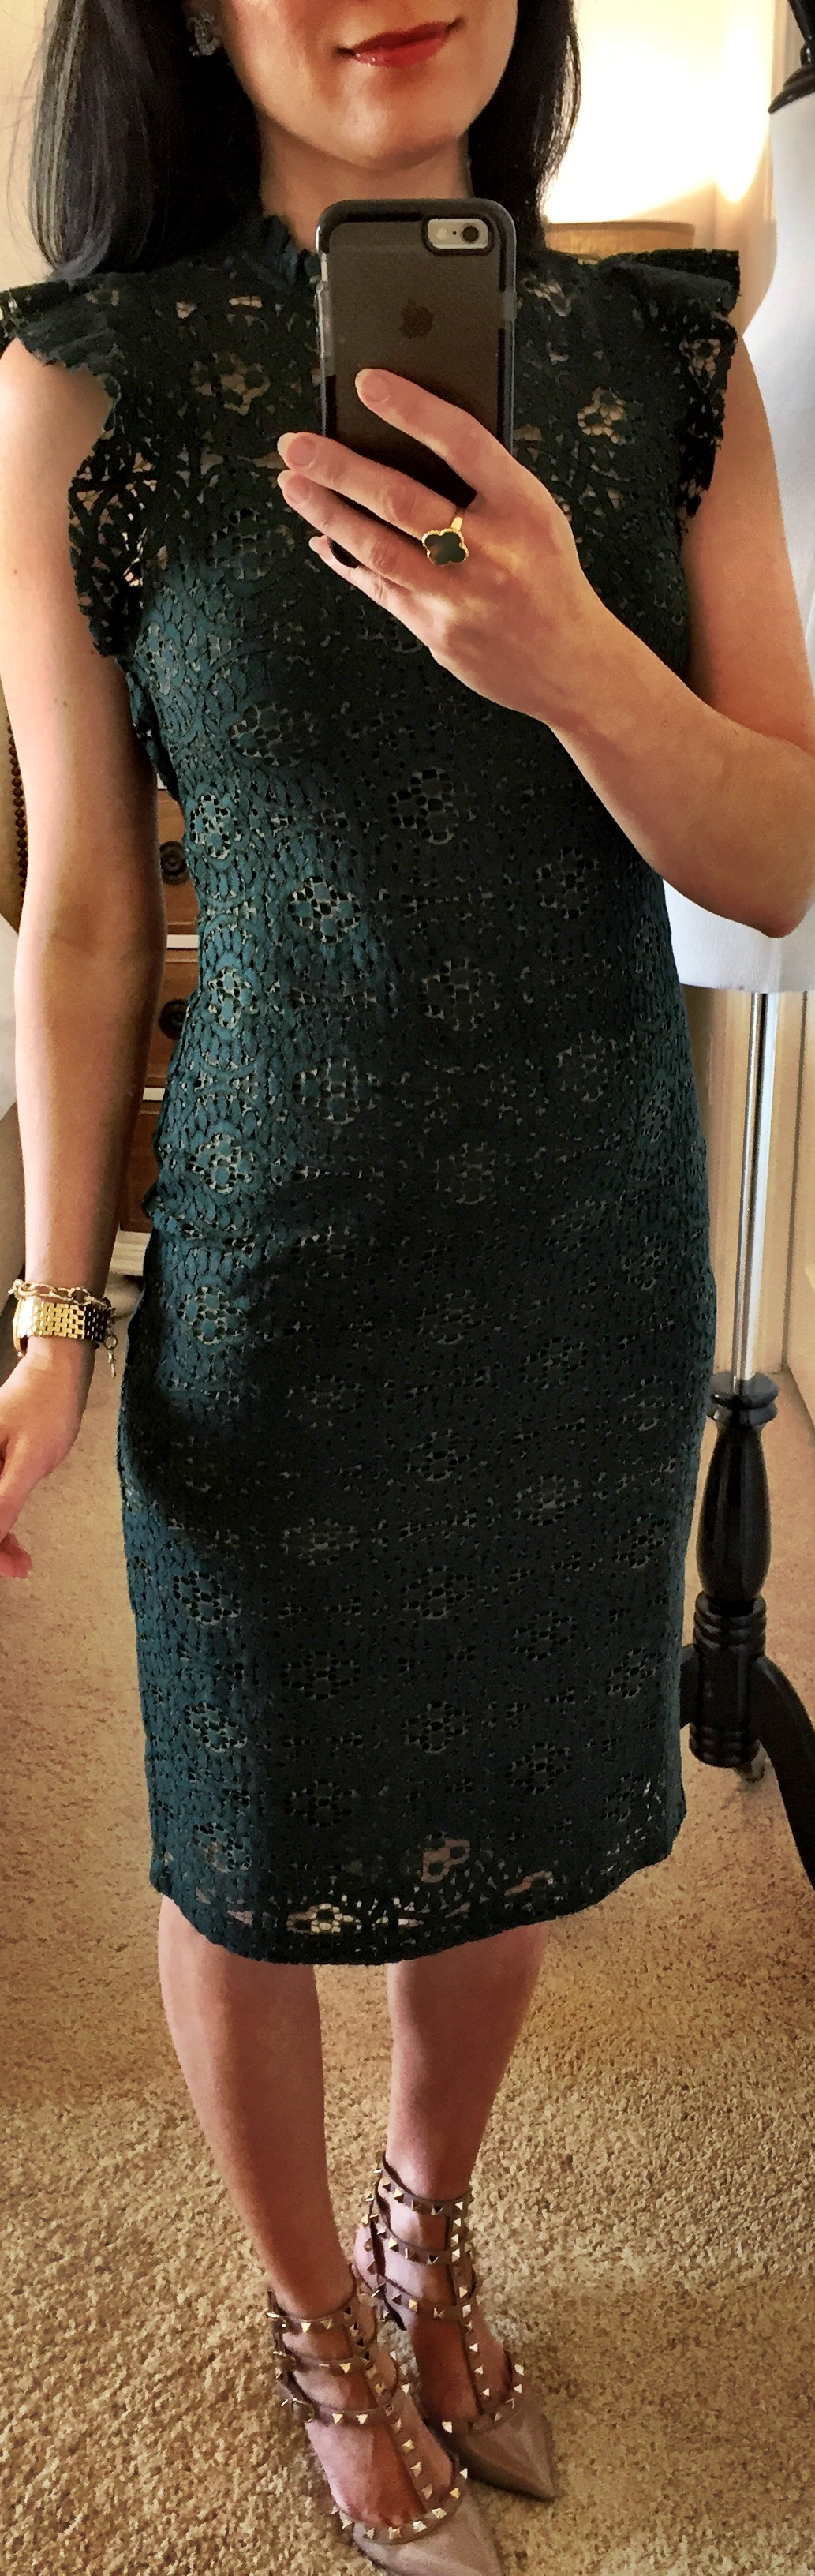 October 21, Green Lace Dress